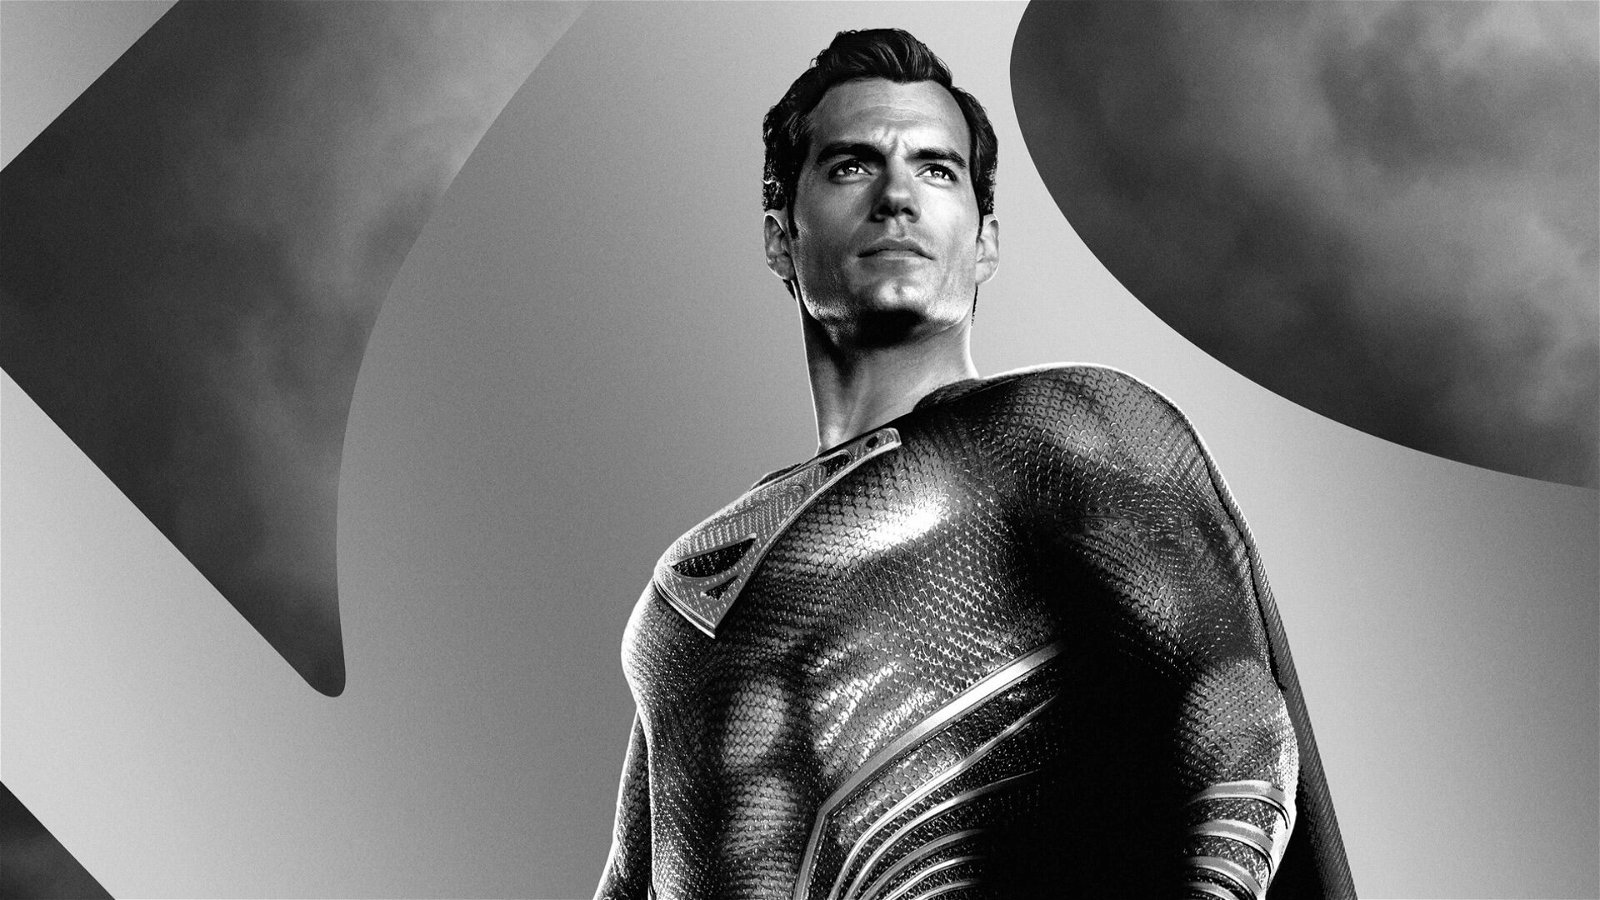 The Snyder Cut, Superman